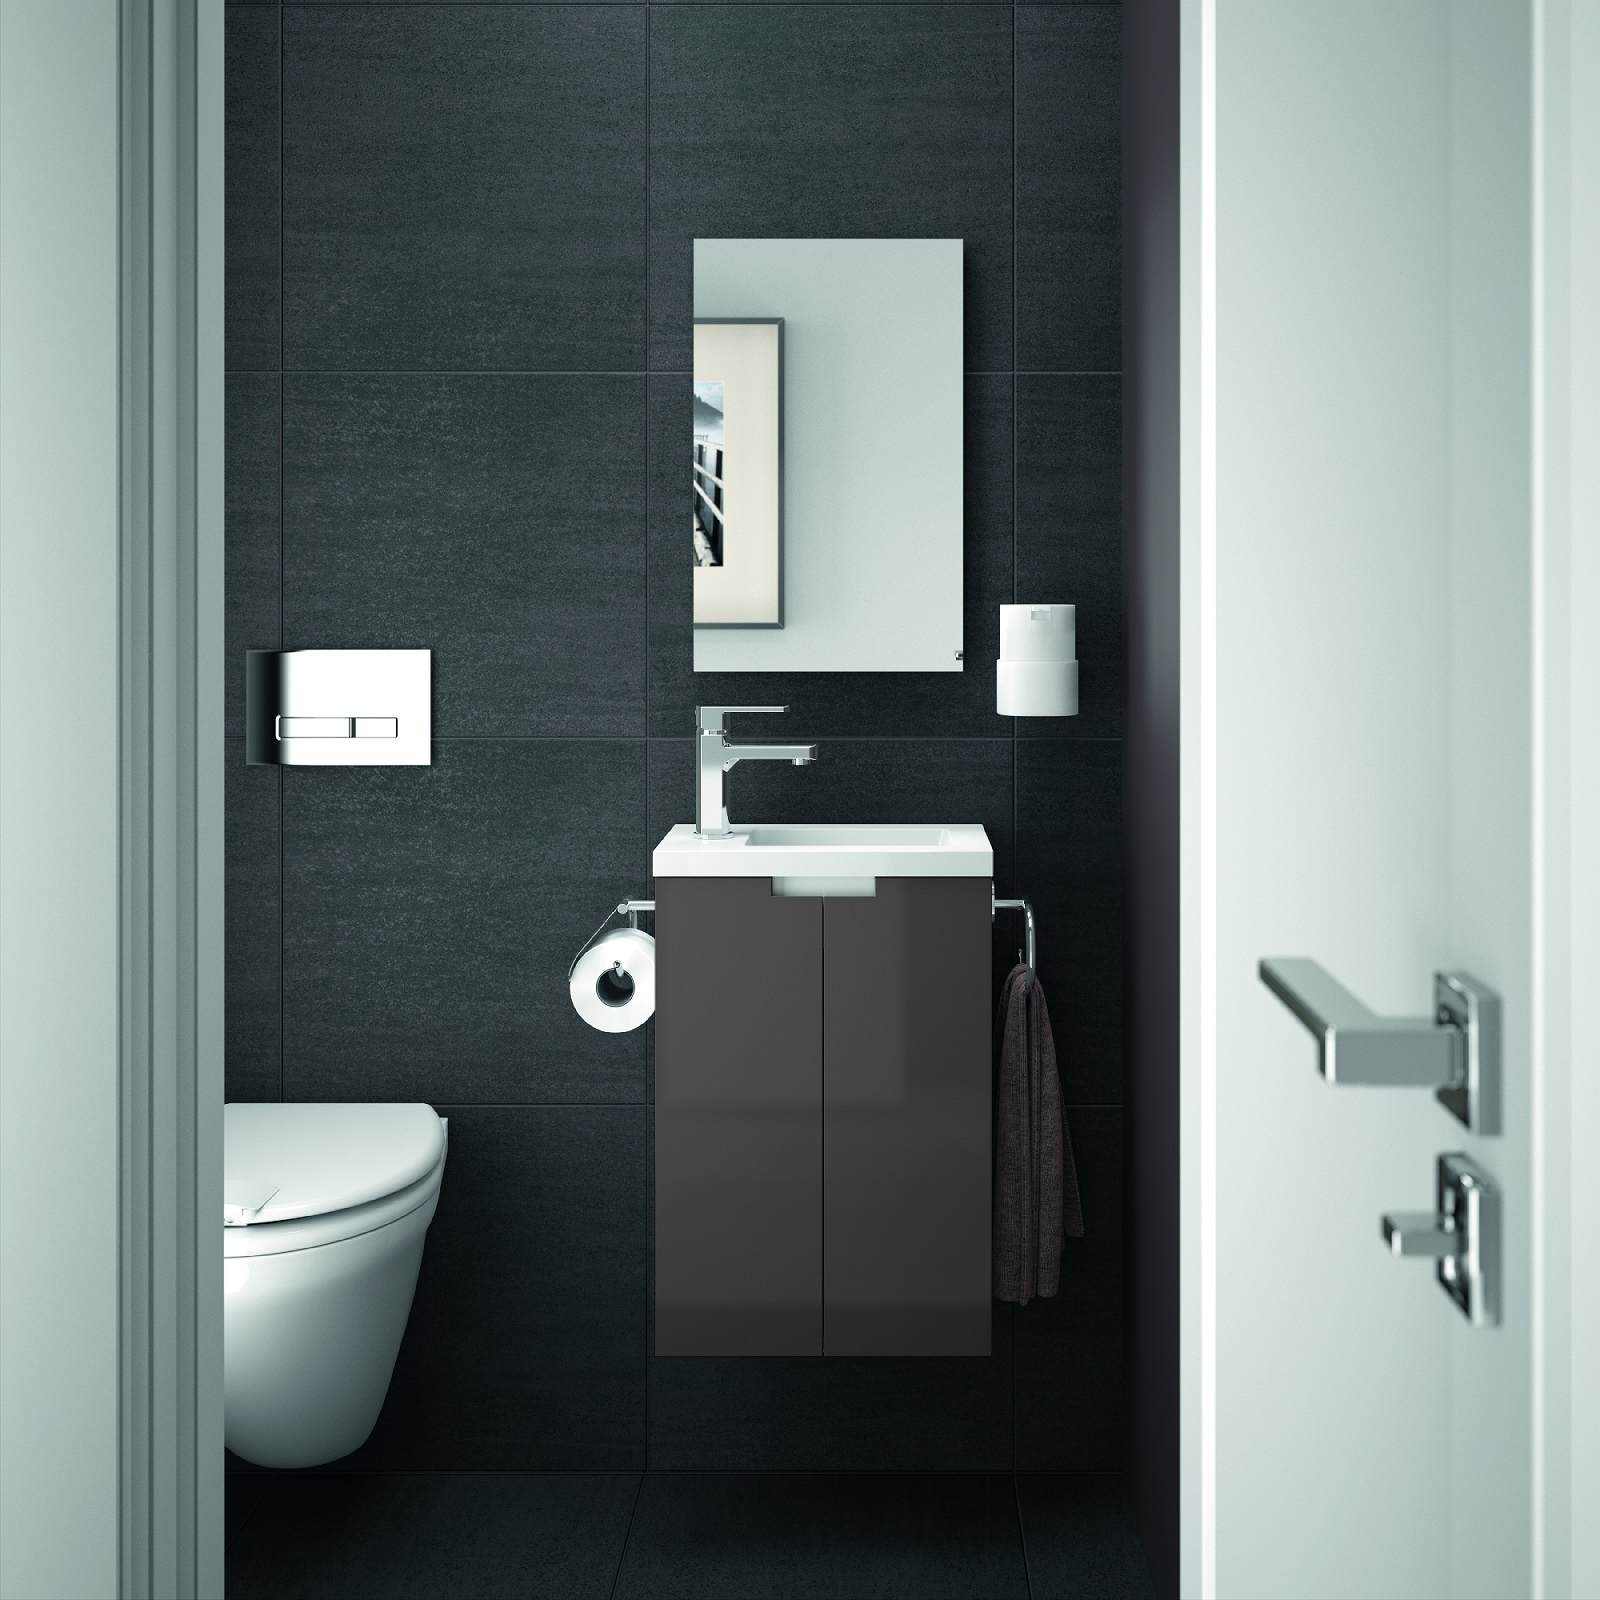 allibert meuble de salle de bain invit s toilettes set pr assembl blanc gris ebay. Black Bedroom Furniture Sets. Home Design Ideas